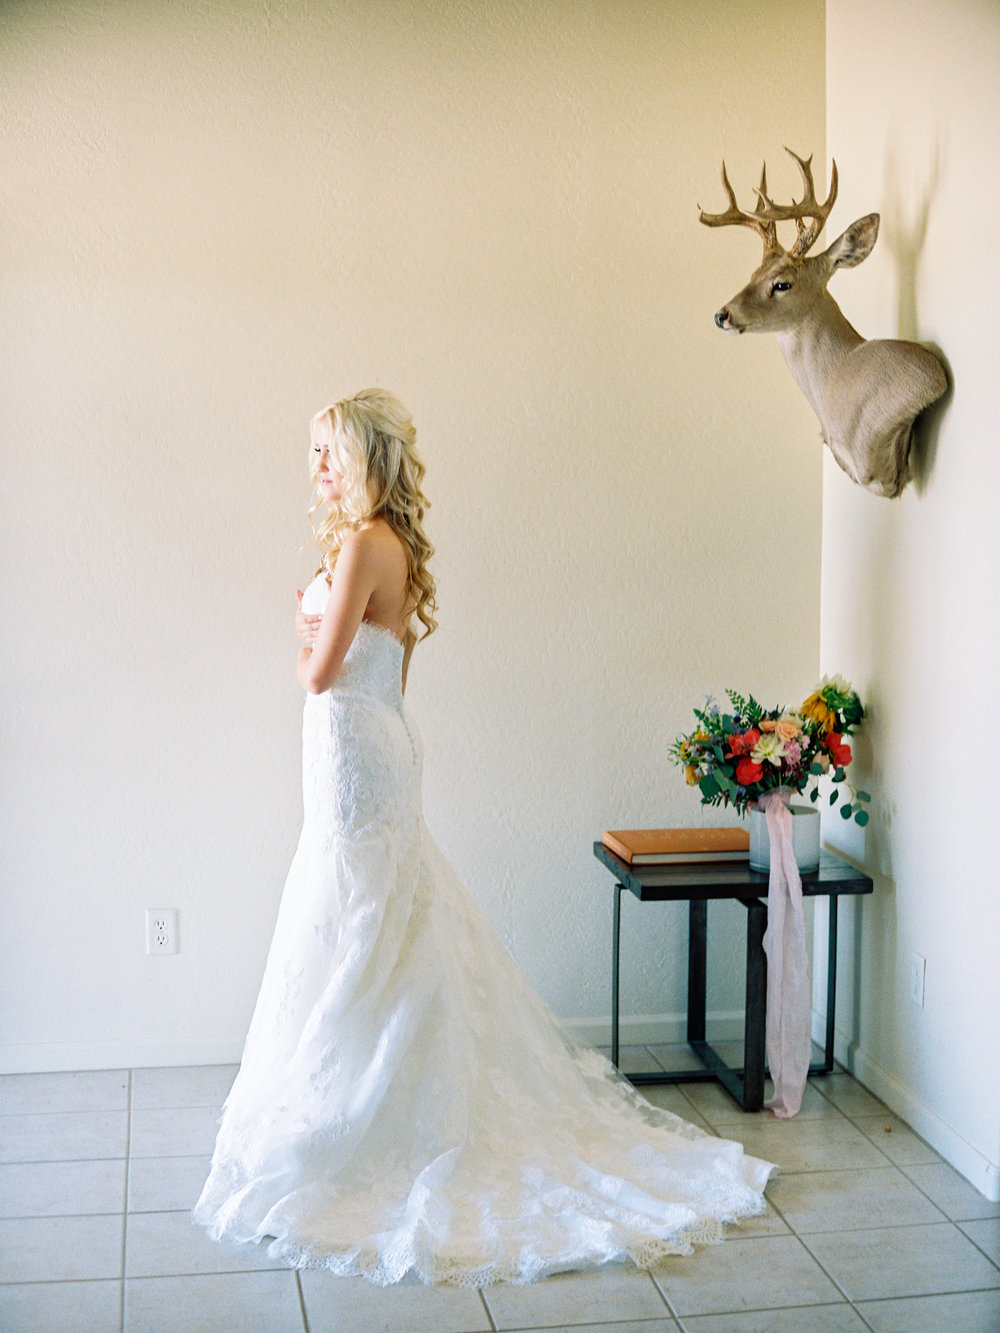 Dairy Farm Wedding - Bride in Beaded Gown